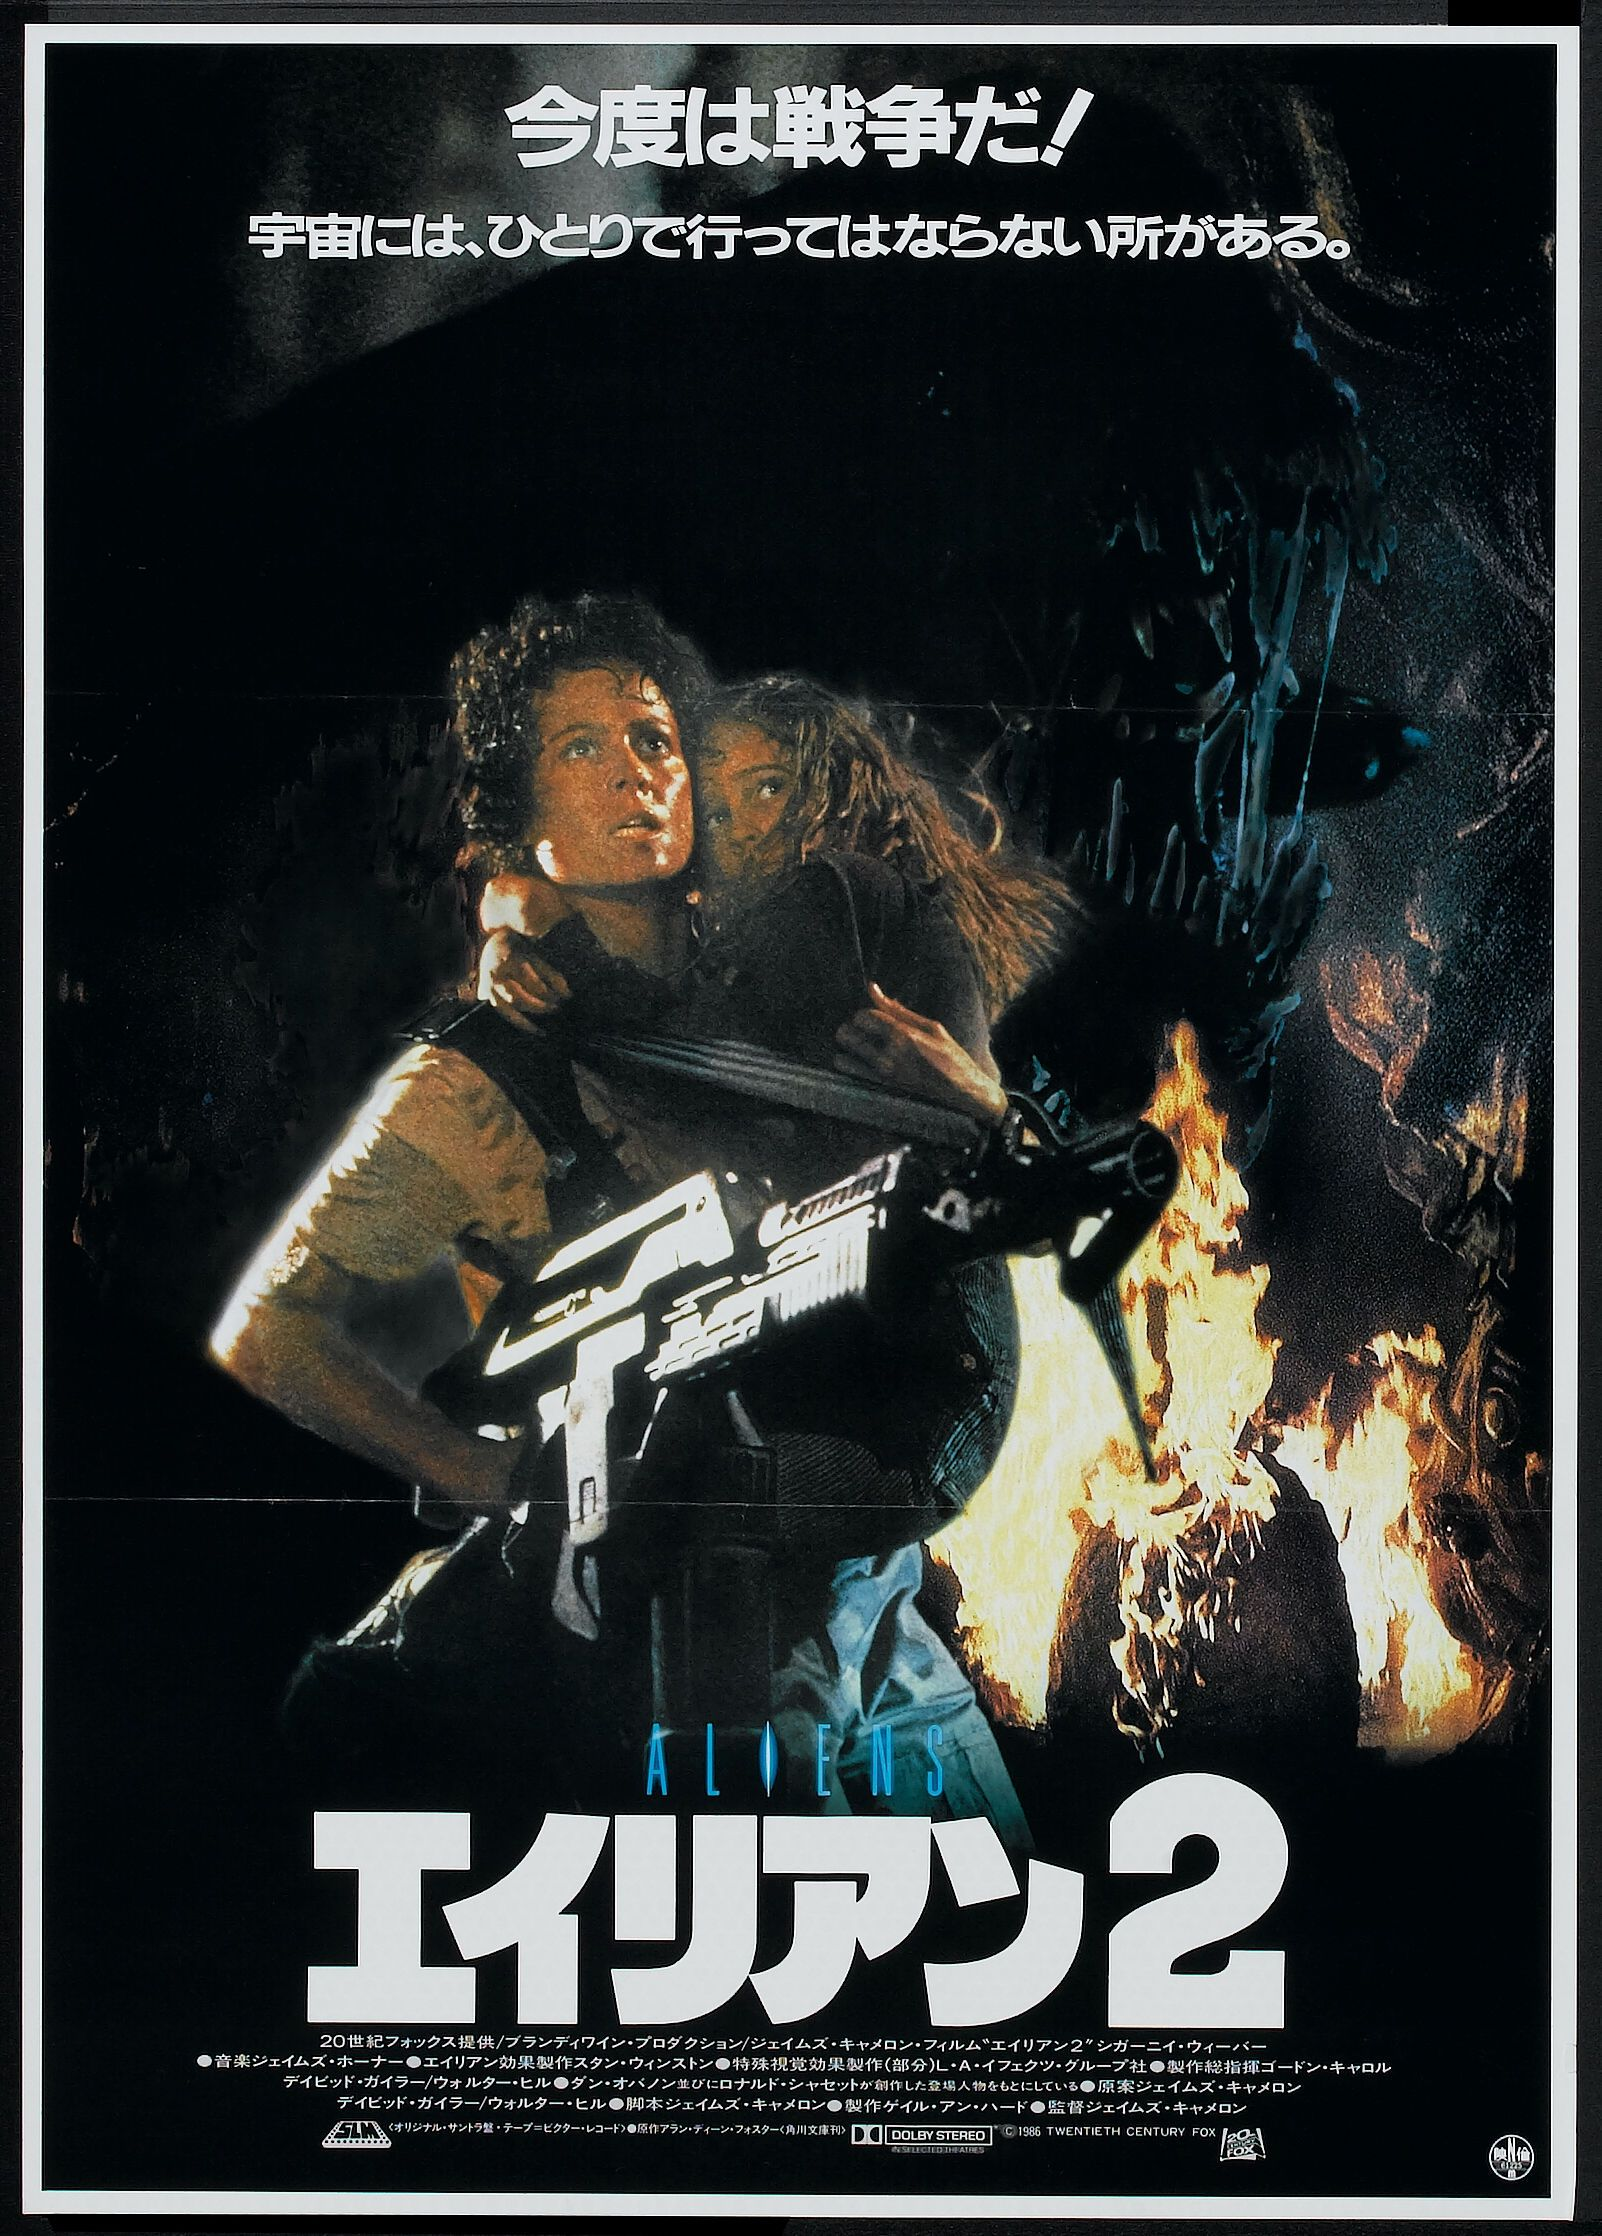 Aliens-1986-Poster-Movie-Poster-Picture-2.jpg